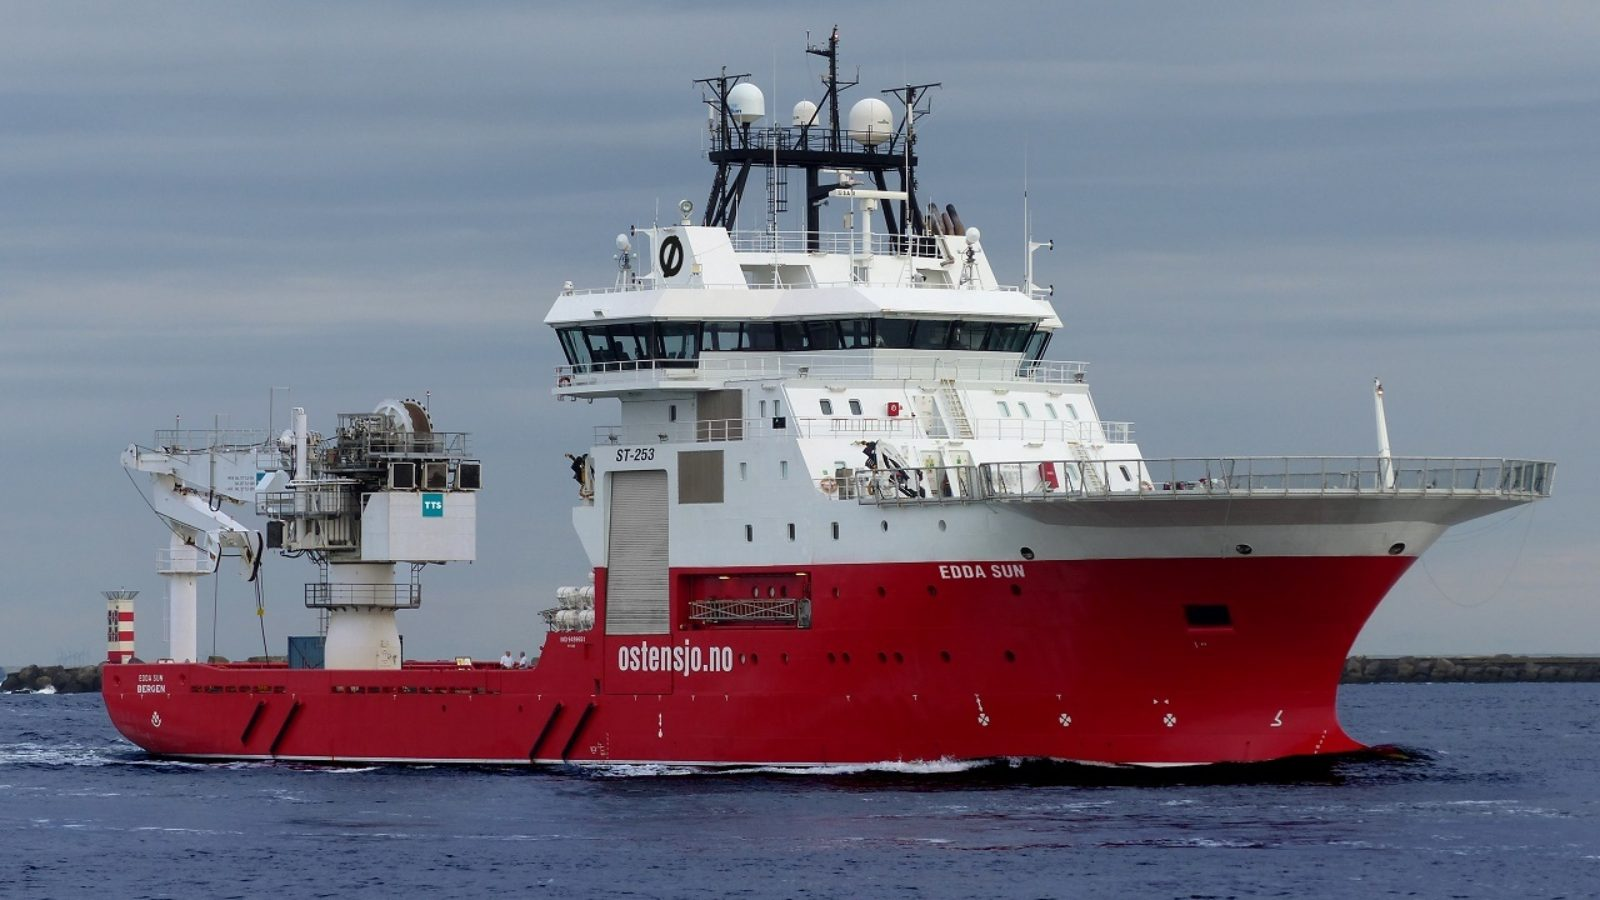 Neptune Energy awards remote monitoring contract to Fugro